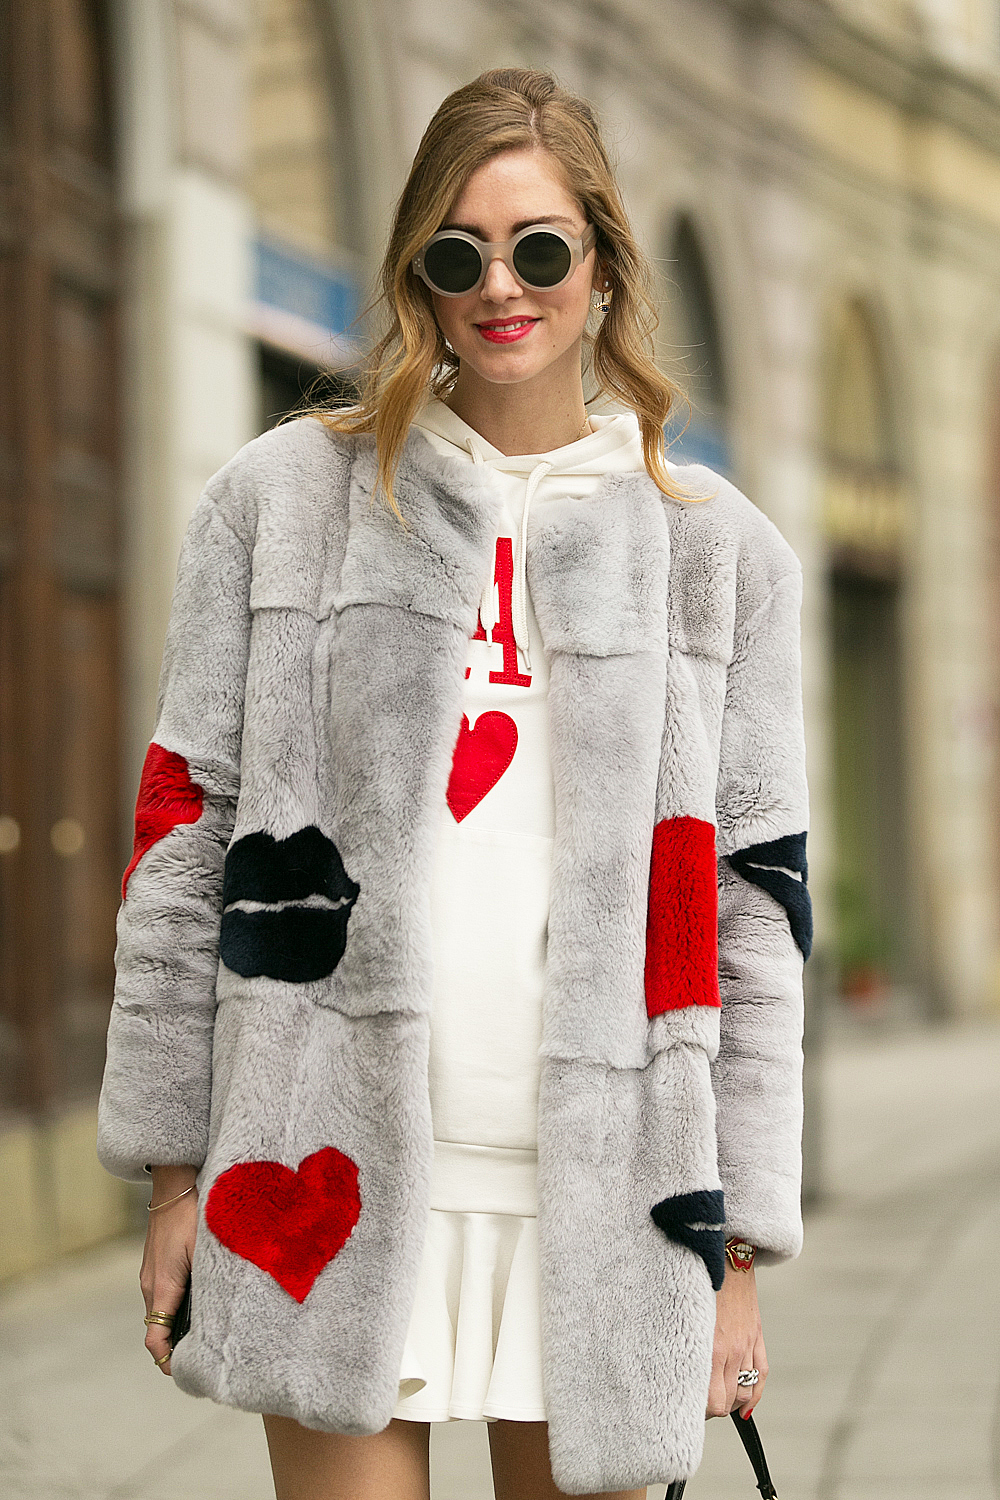 Chiara Ferragni At Milan Fashion Week